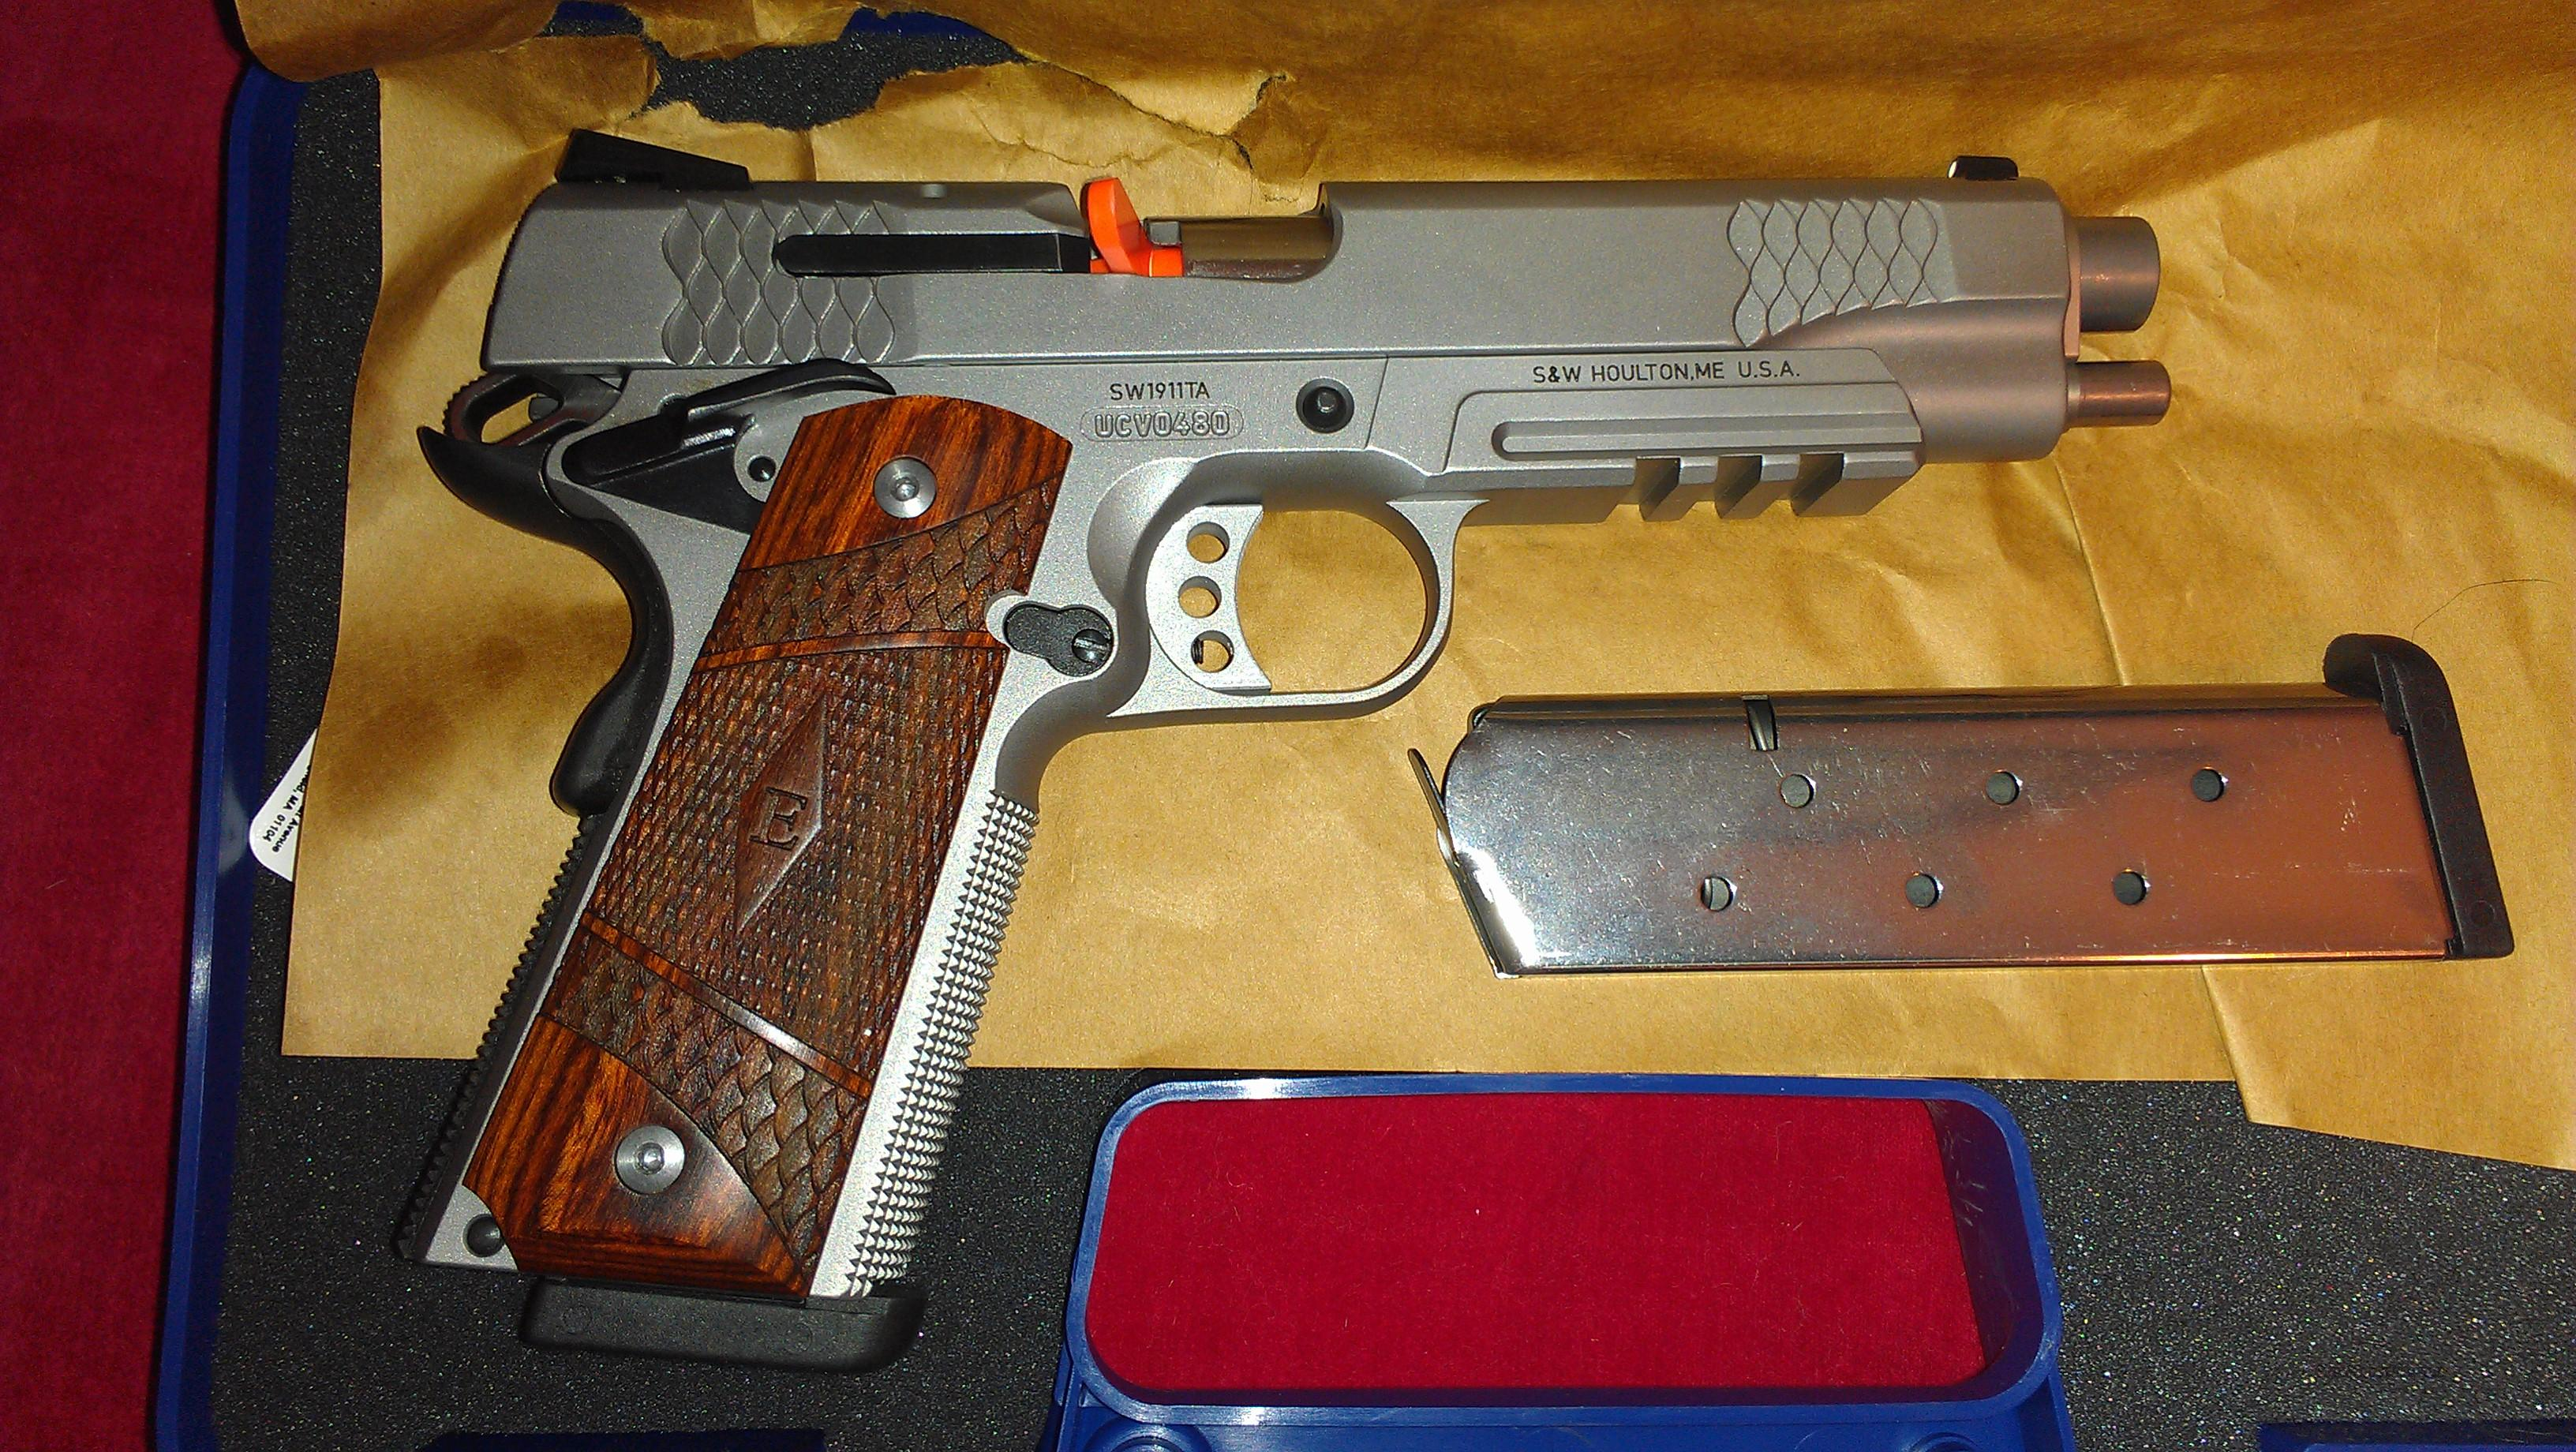 SMITH AND WESSON SW1911TA 45 ACP  Guns > Pistols > Smith & Wesson Pistols - Autos > Steel Frame